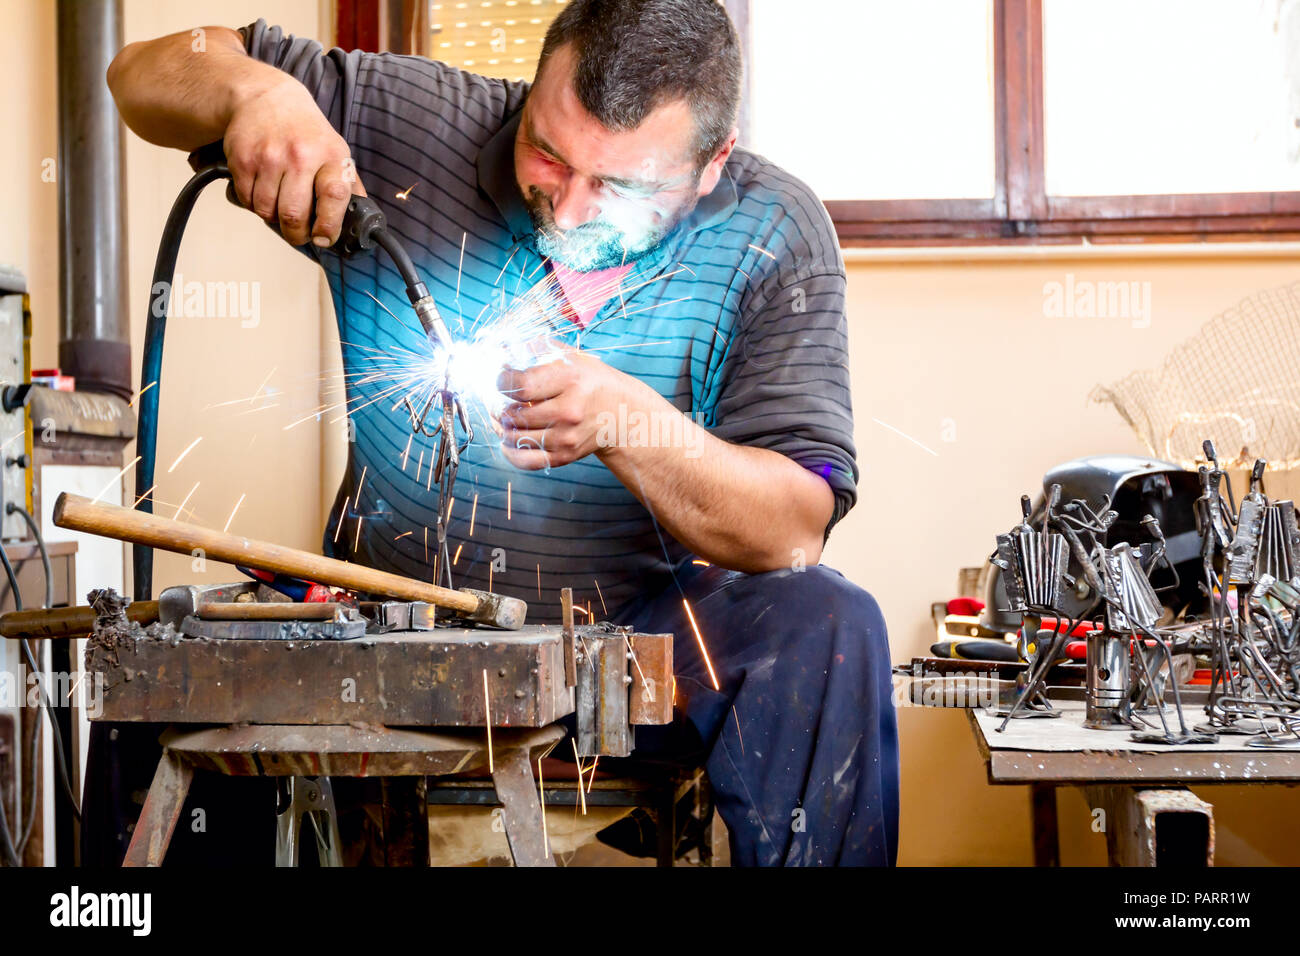 Sculptor is using arc welding to assembly metal sculpture without proper protection, barehanded. - Stock Image